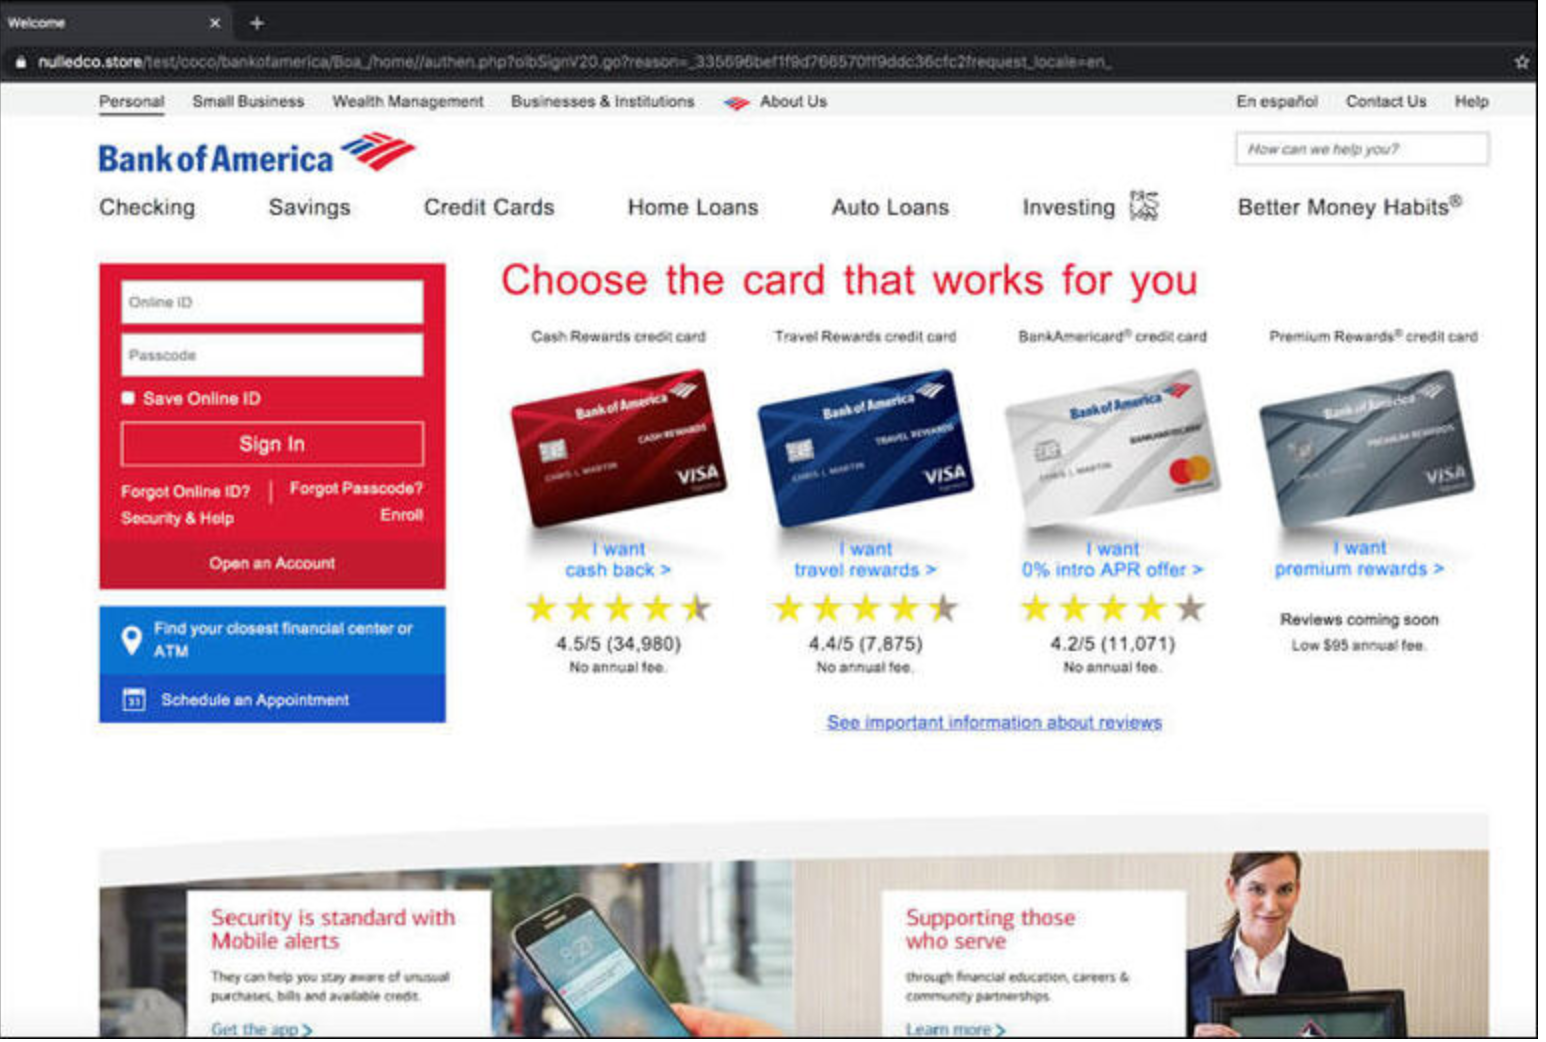 Bank of America Spoofed Page